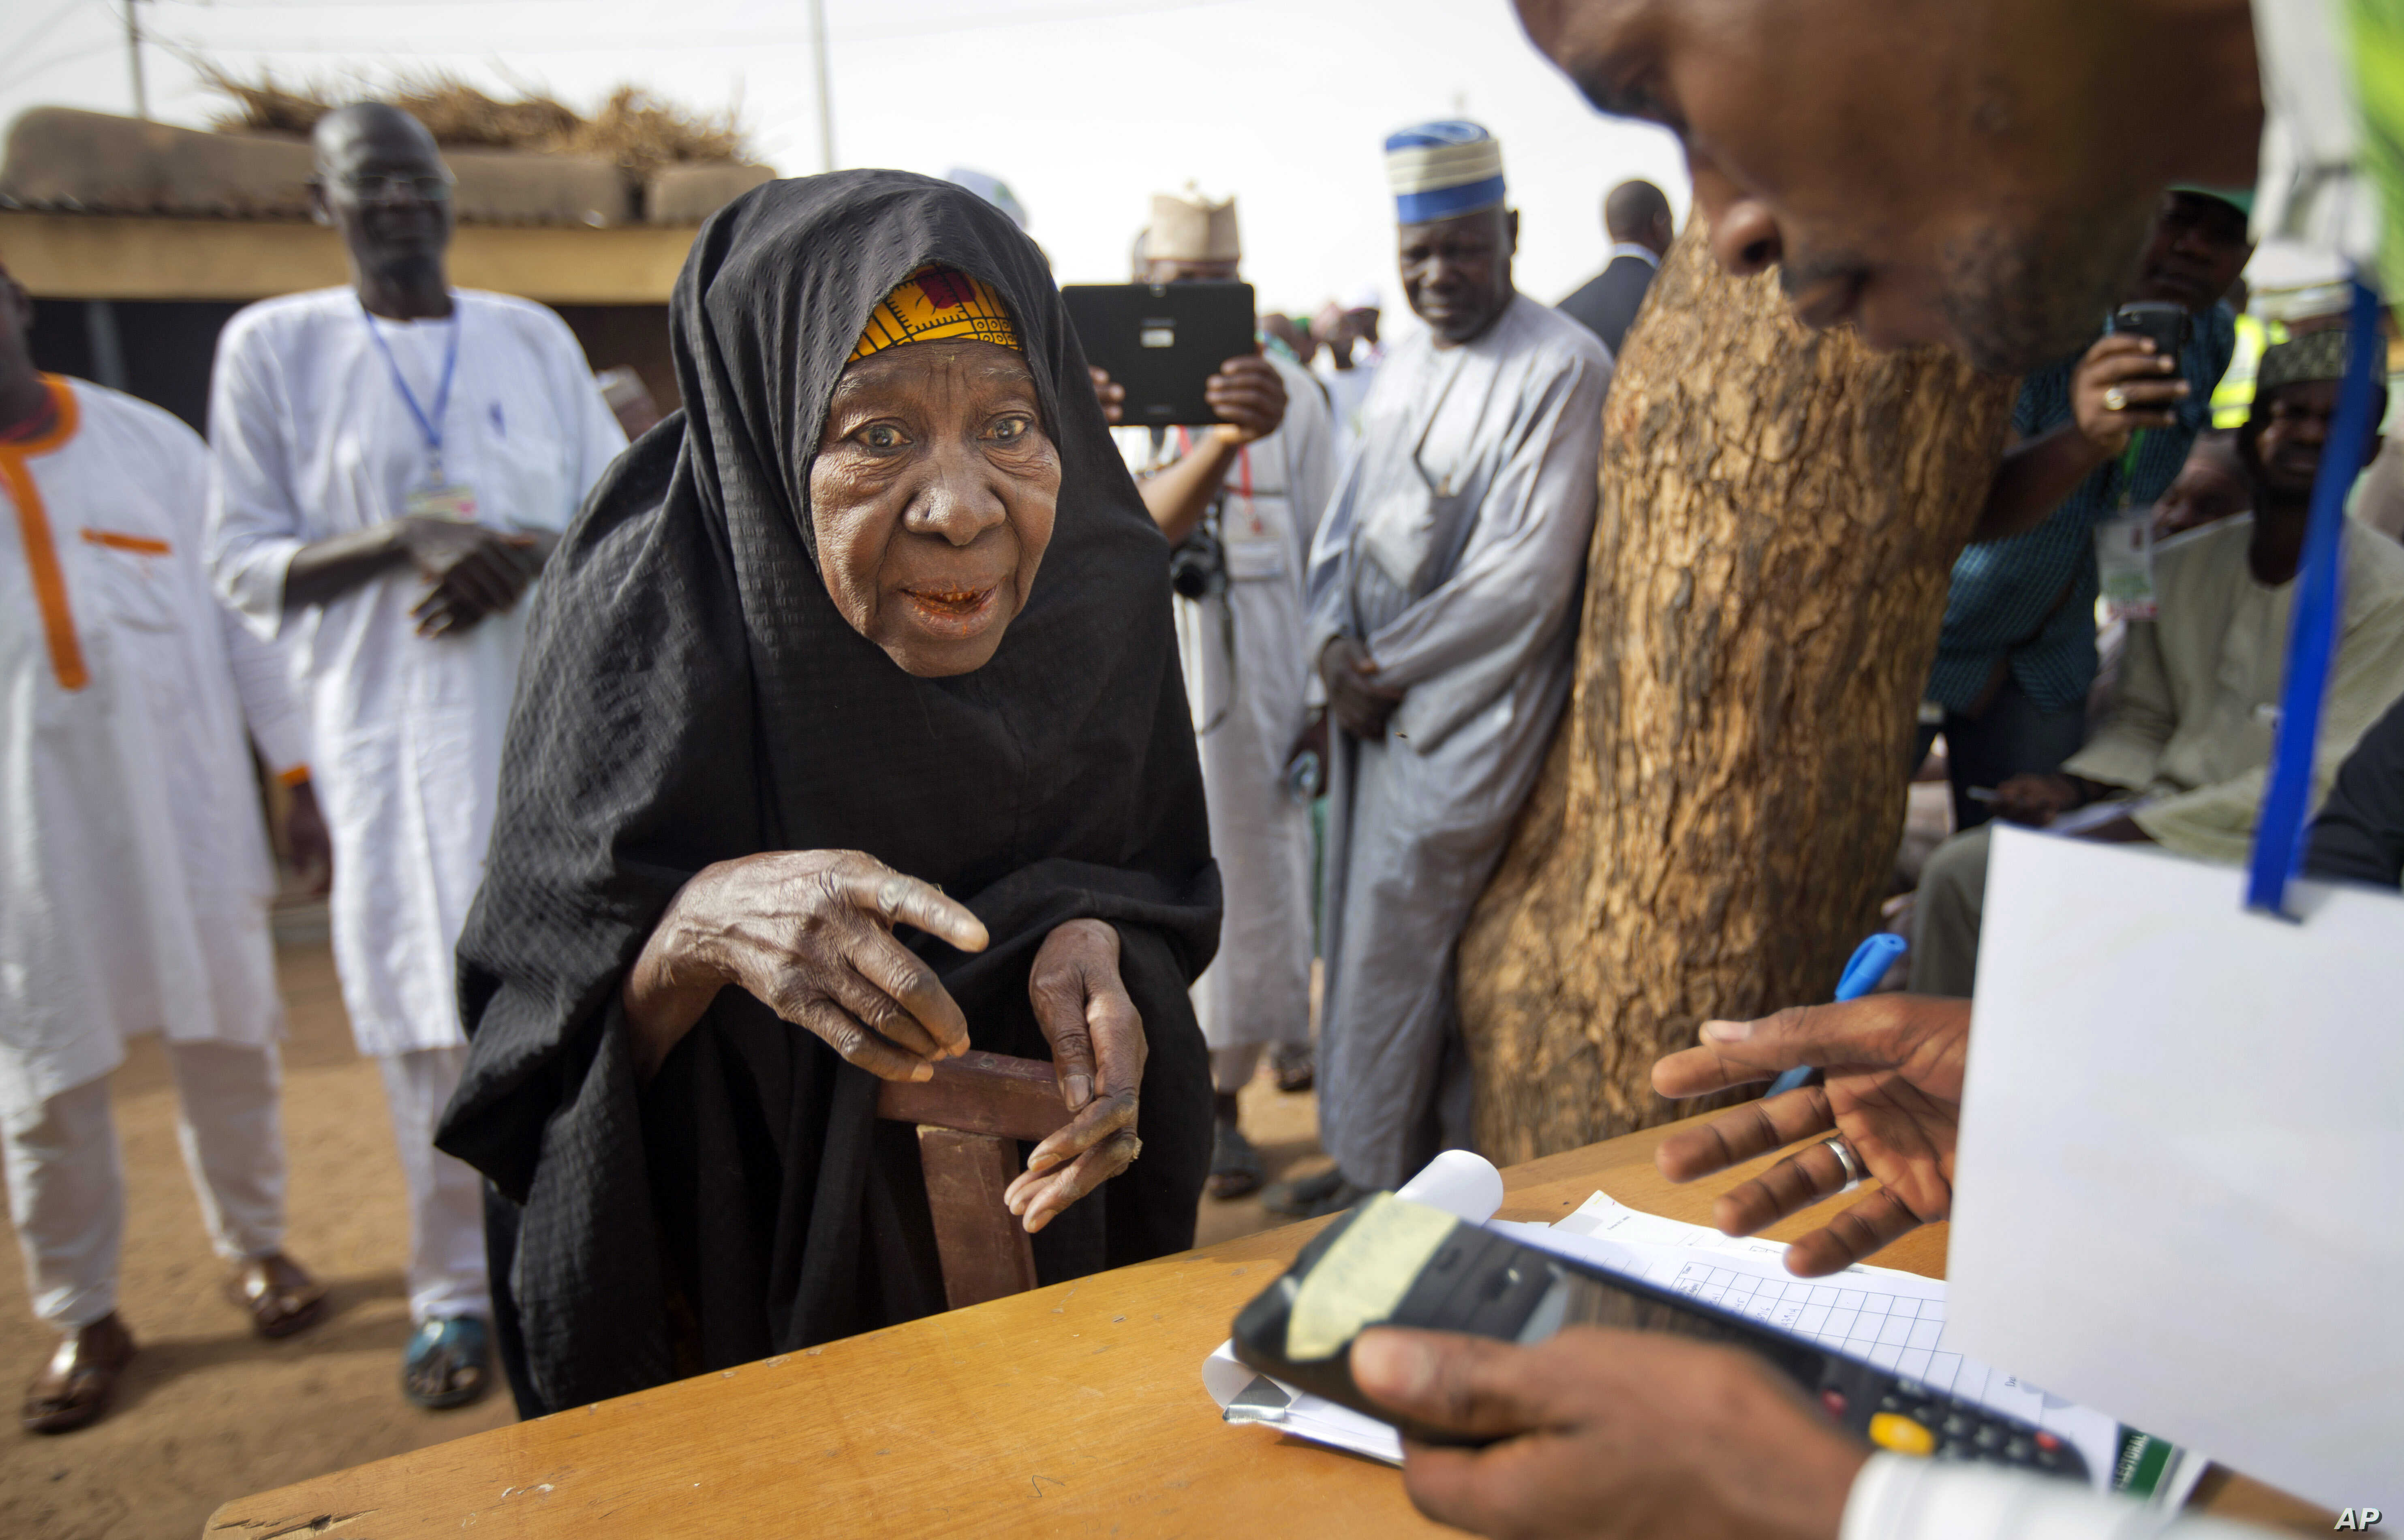 Report: Africa's Older Population Invisible in Rankings